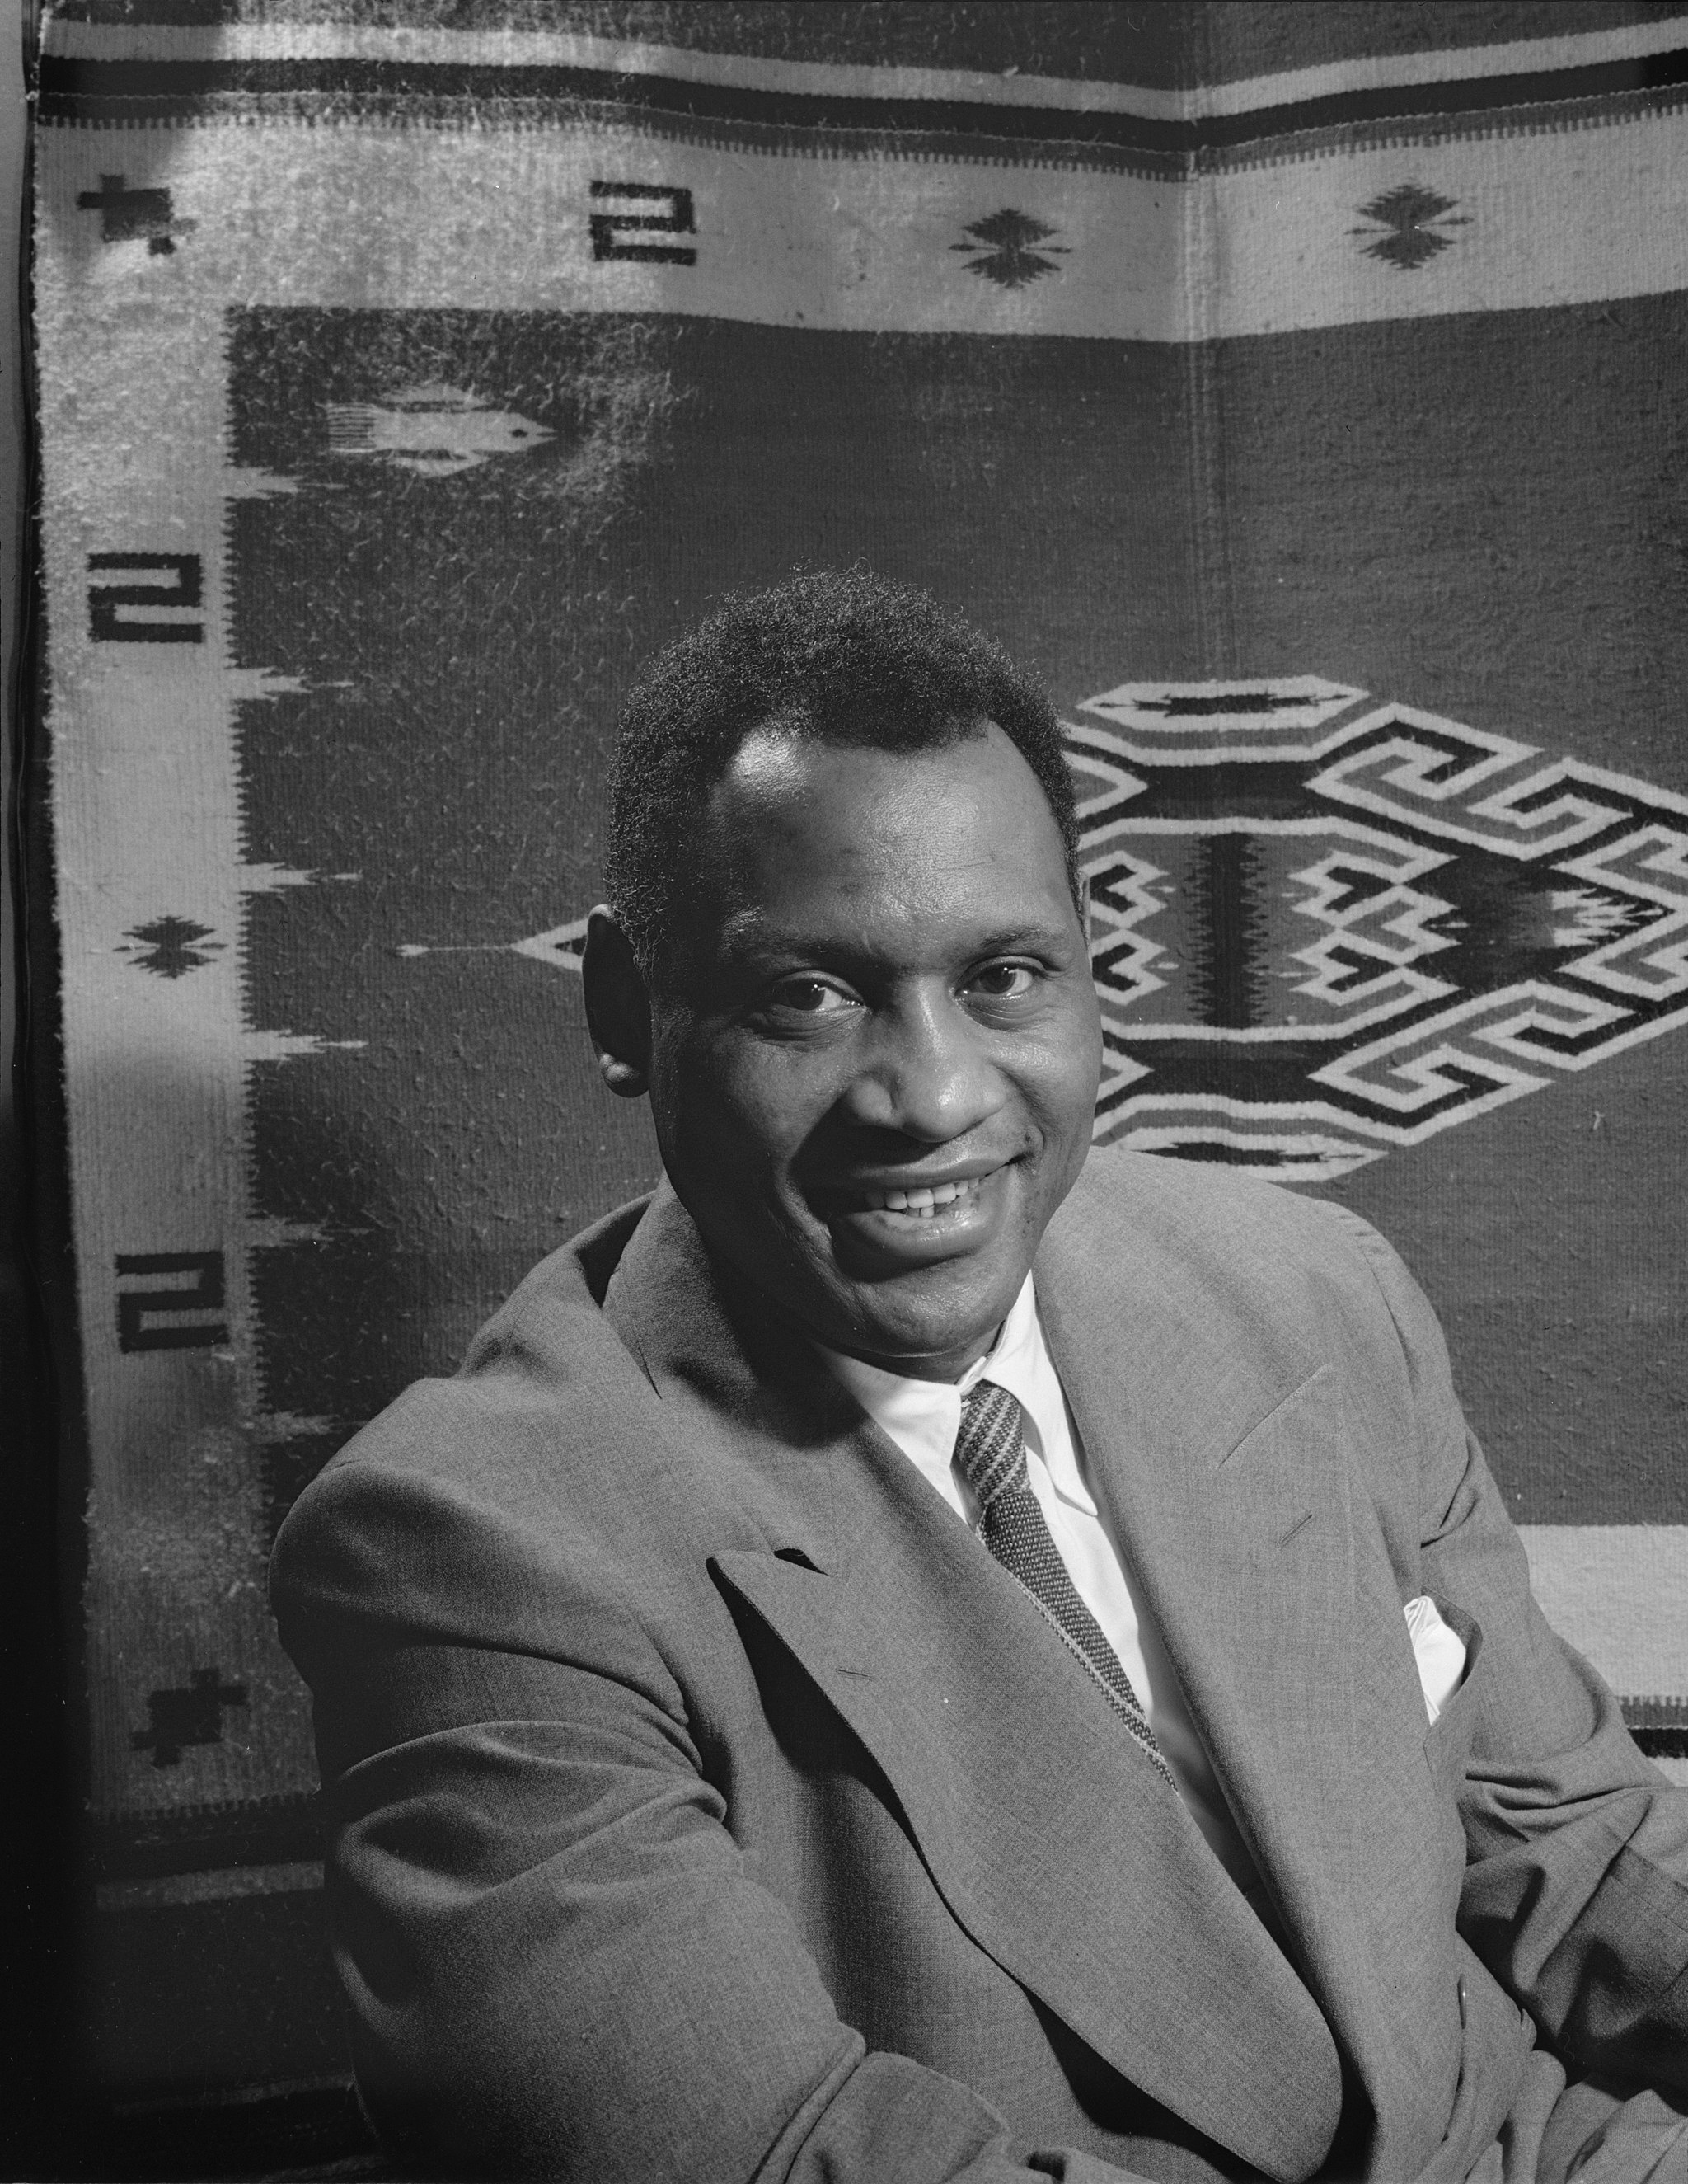 Paul Robeson (1925-1940)